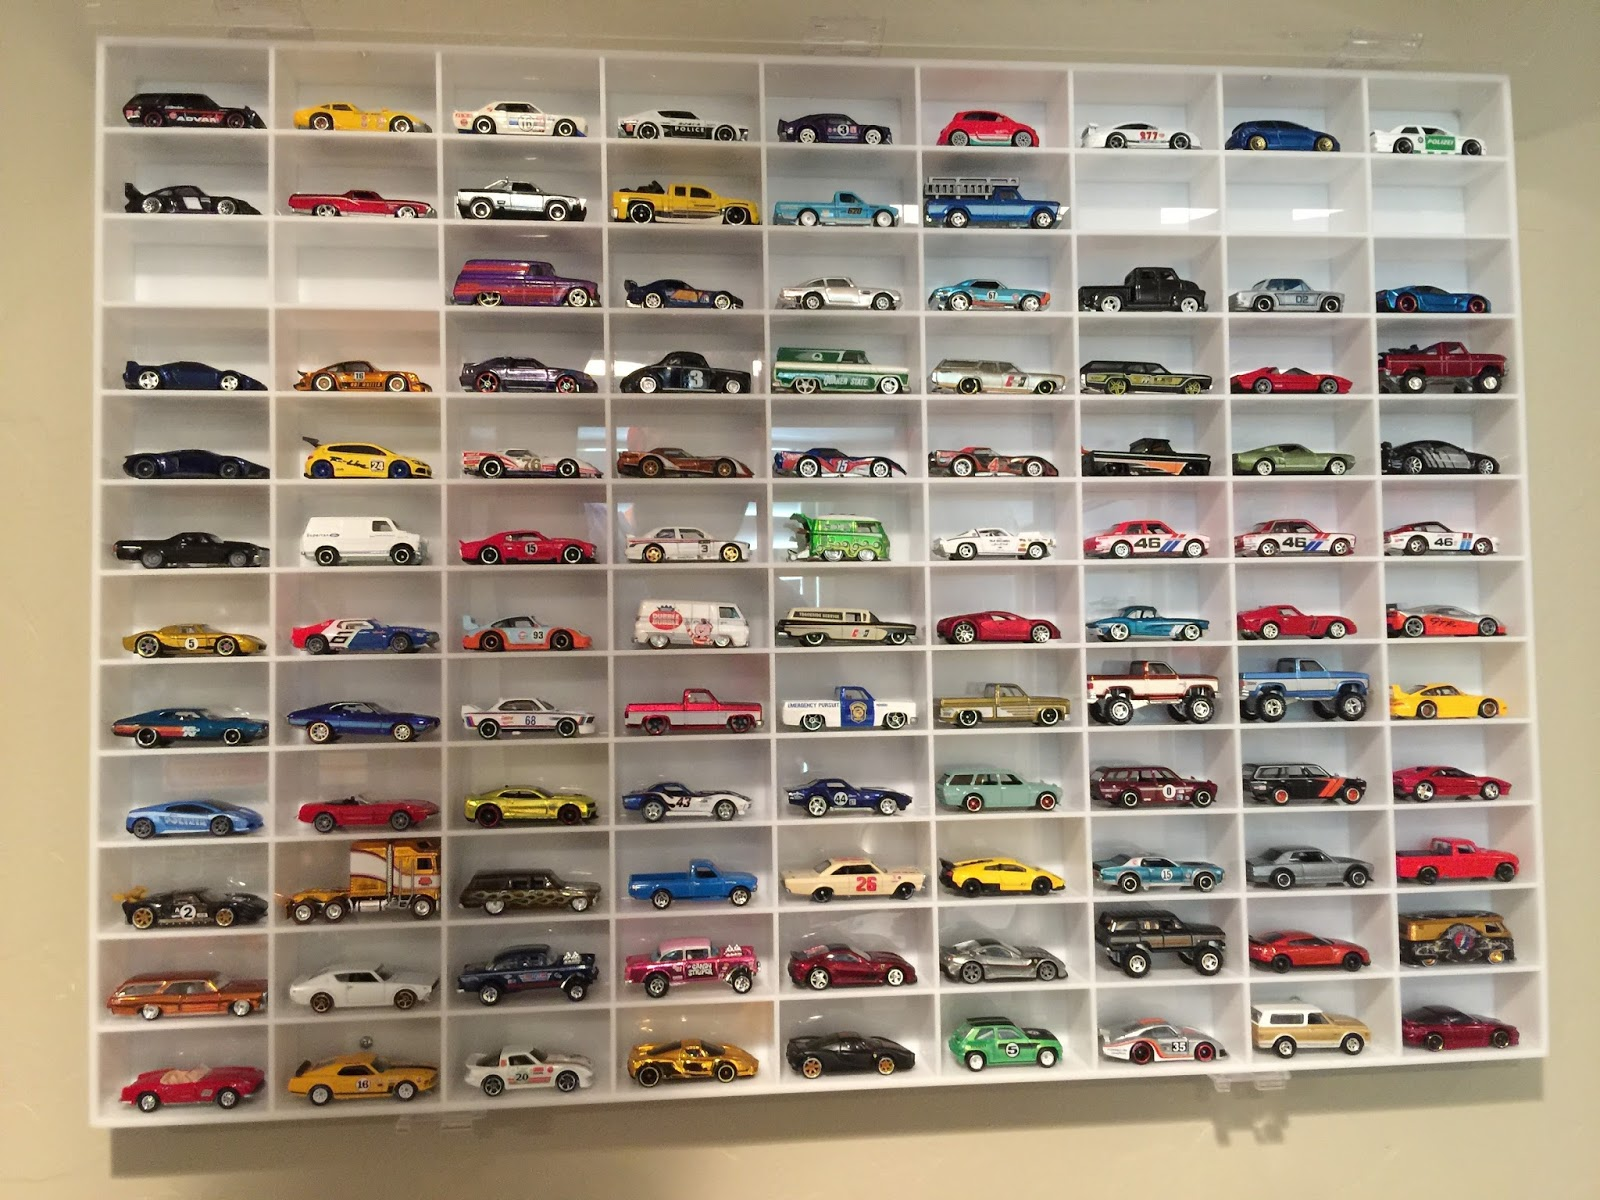 a research on best hot wheels web sites for adult collectors Looking for collectible hot wheels shop the best assortment of rare cars and vehicles for collectors right now at the official hot wheels website.